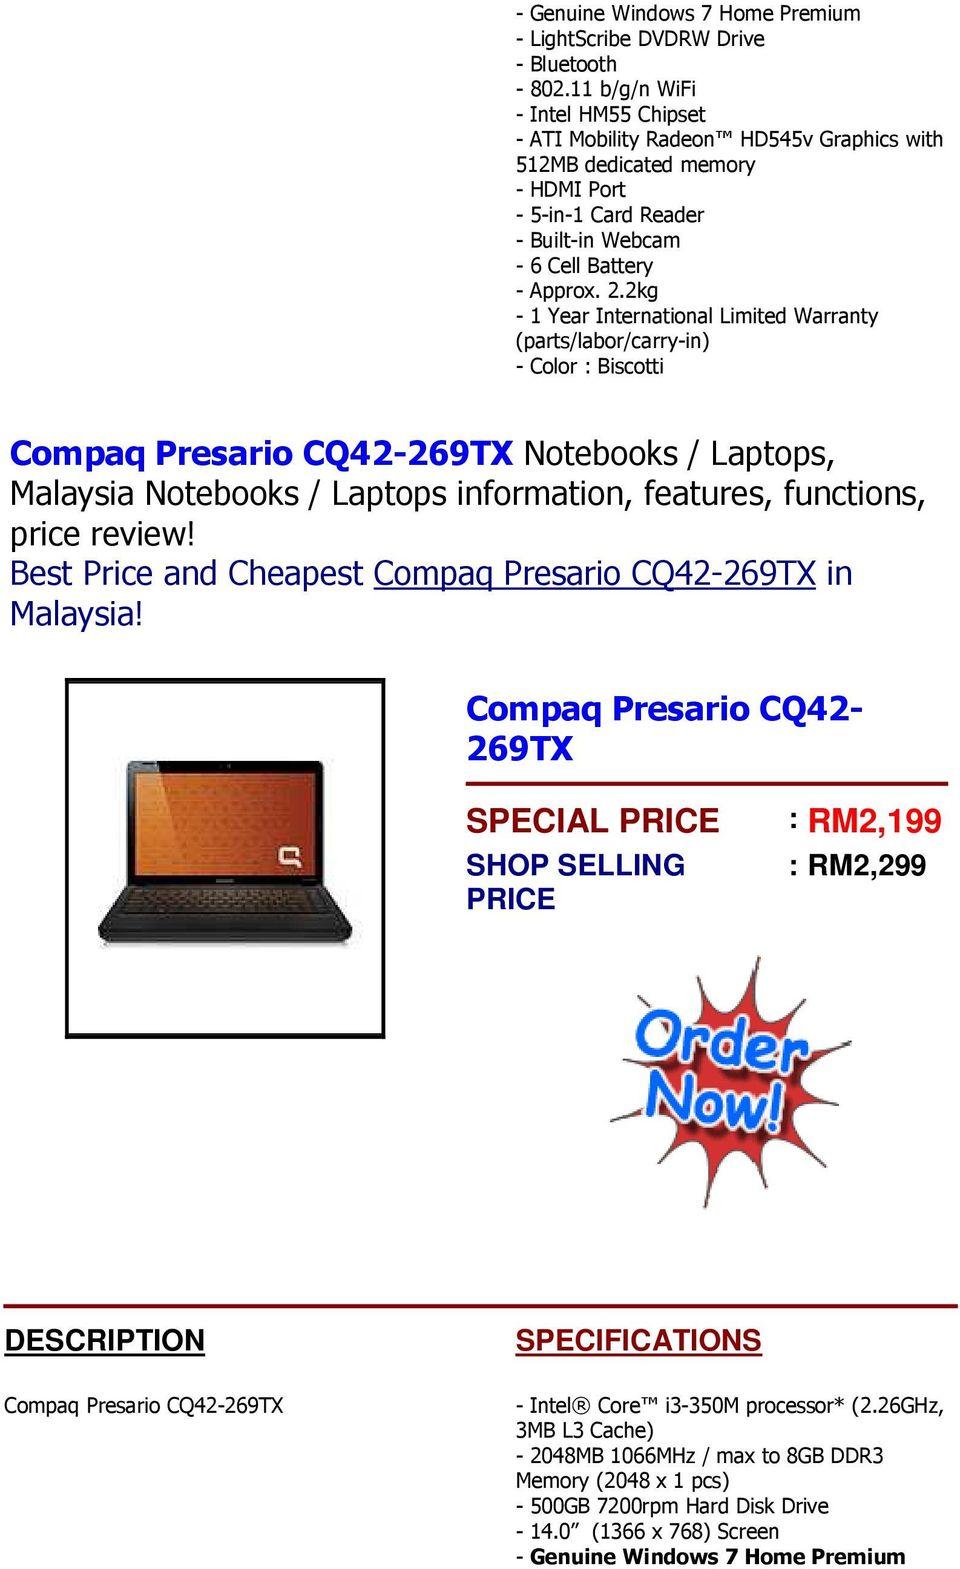 2kg - 1 Year International Limited Warranty (parts/labor/carry-in) - Color : Biscotti Compaq Presario CQ42-269TX Notebooks / Laptops, Best Price and Cheapest Compaq Presario CQ42-269TX